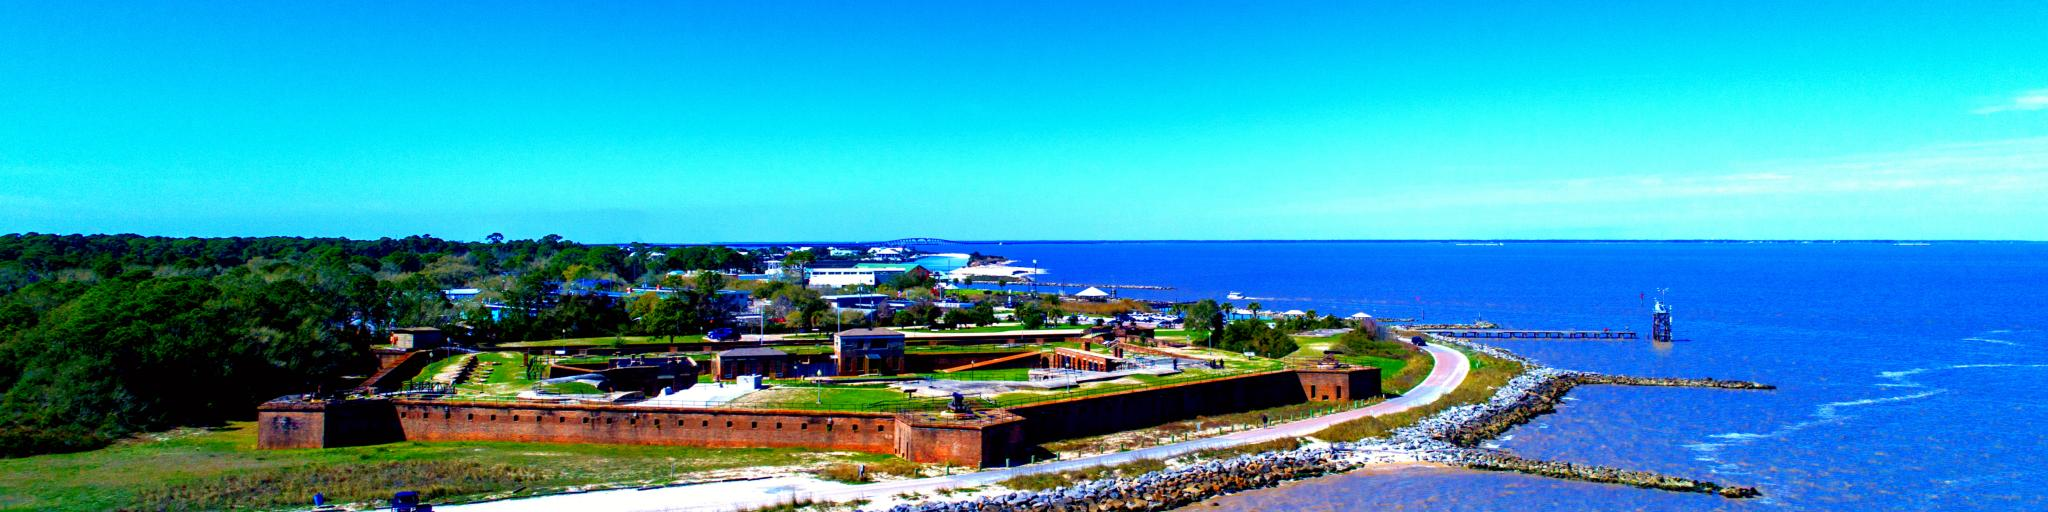 A panoramic view of a pentagon-shaped Fort Gaines along Mobile Bay in Dauphin Island, Alabama, USA, in fair weather